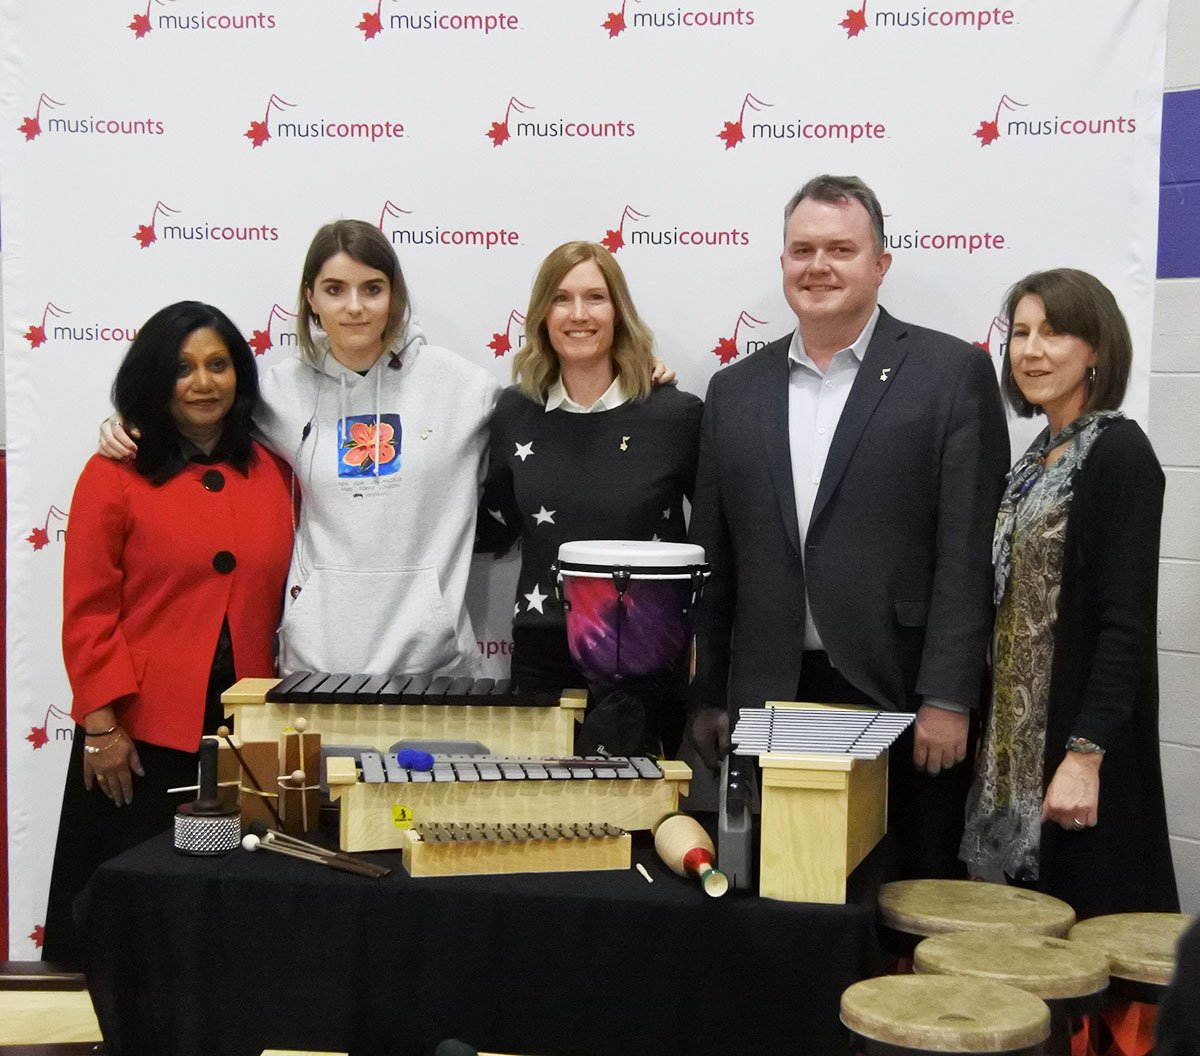 MusiCounts awarded $15,000 worth of musical instruments to St. Paul Catholic Elementary School on Monday.